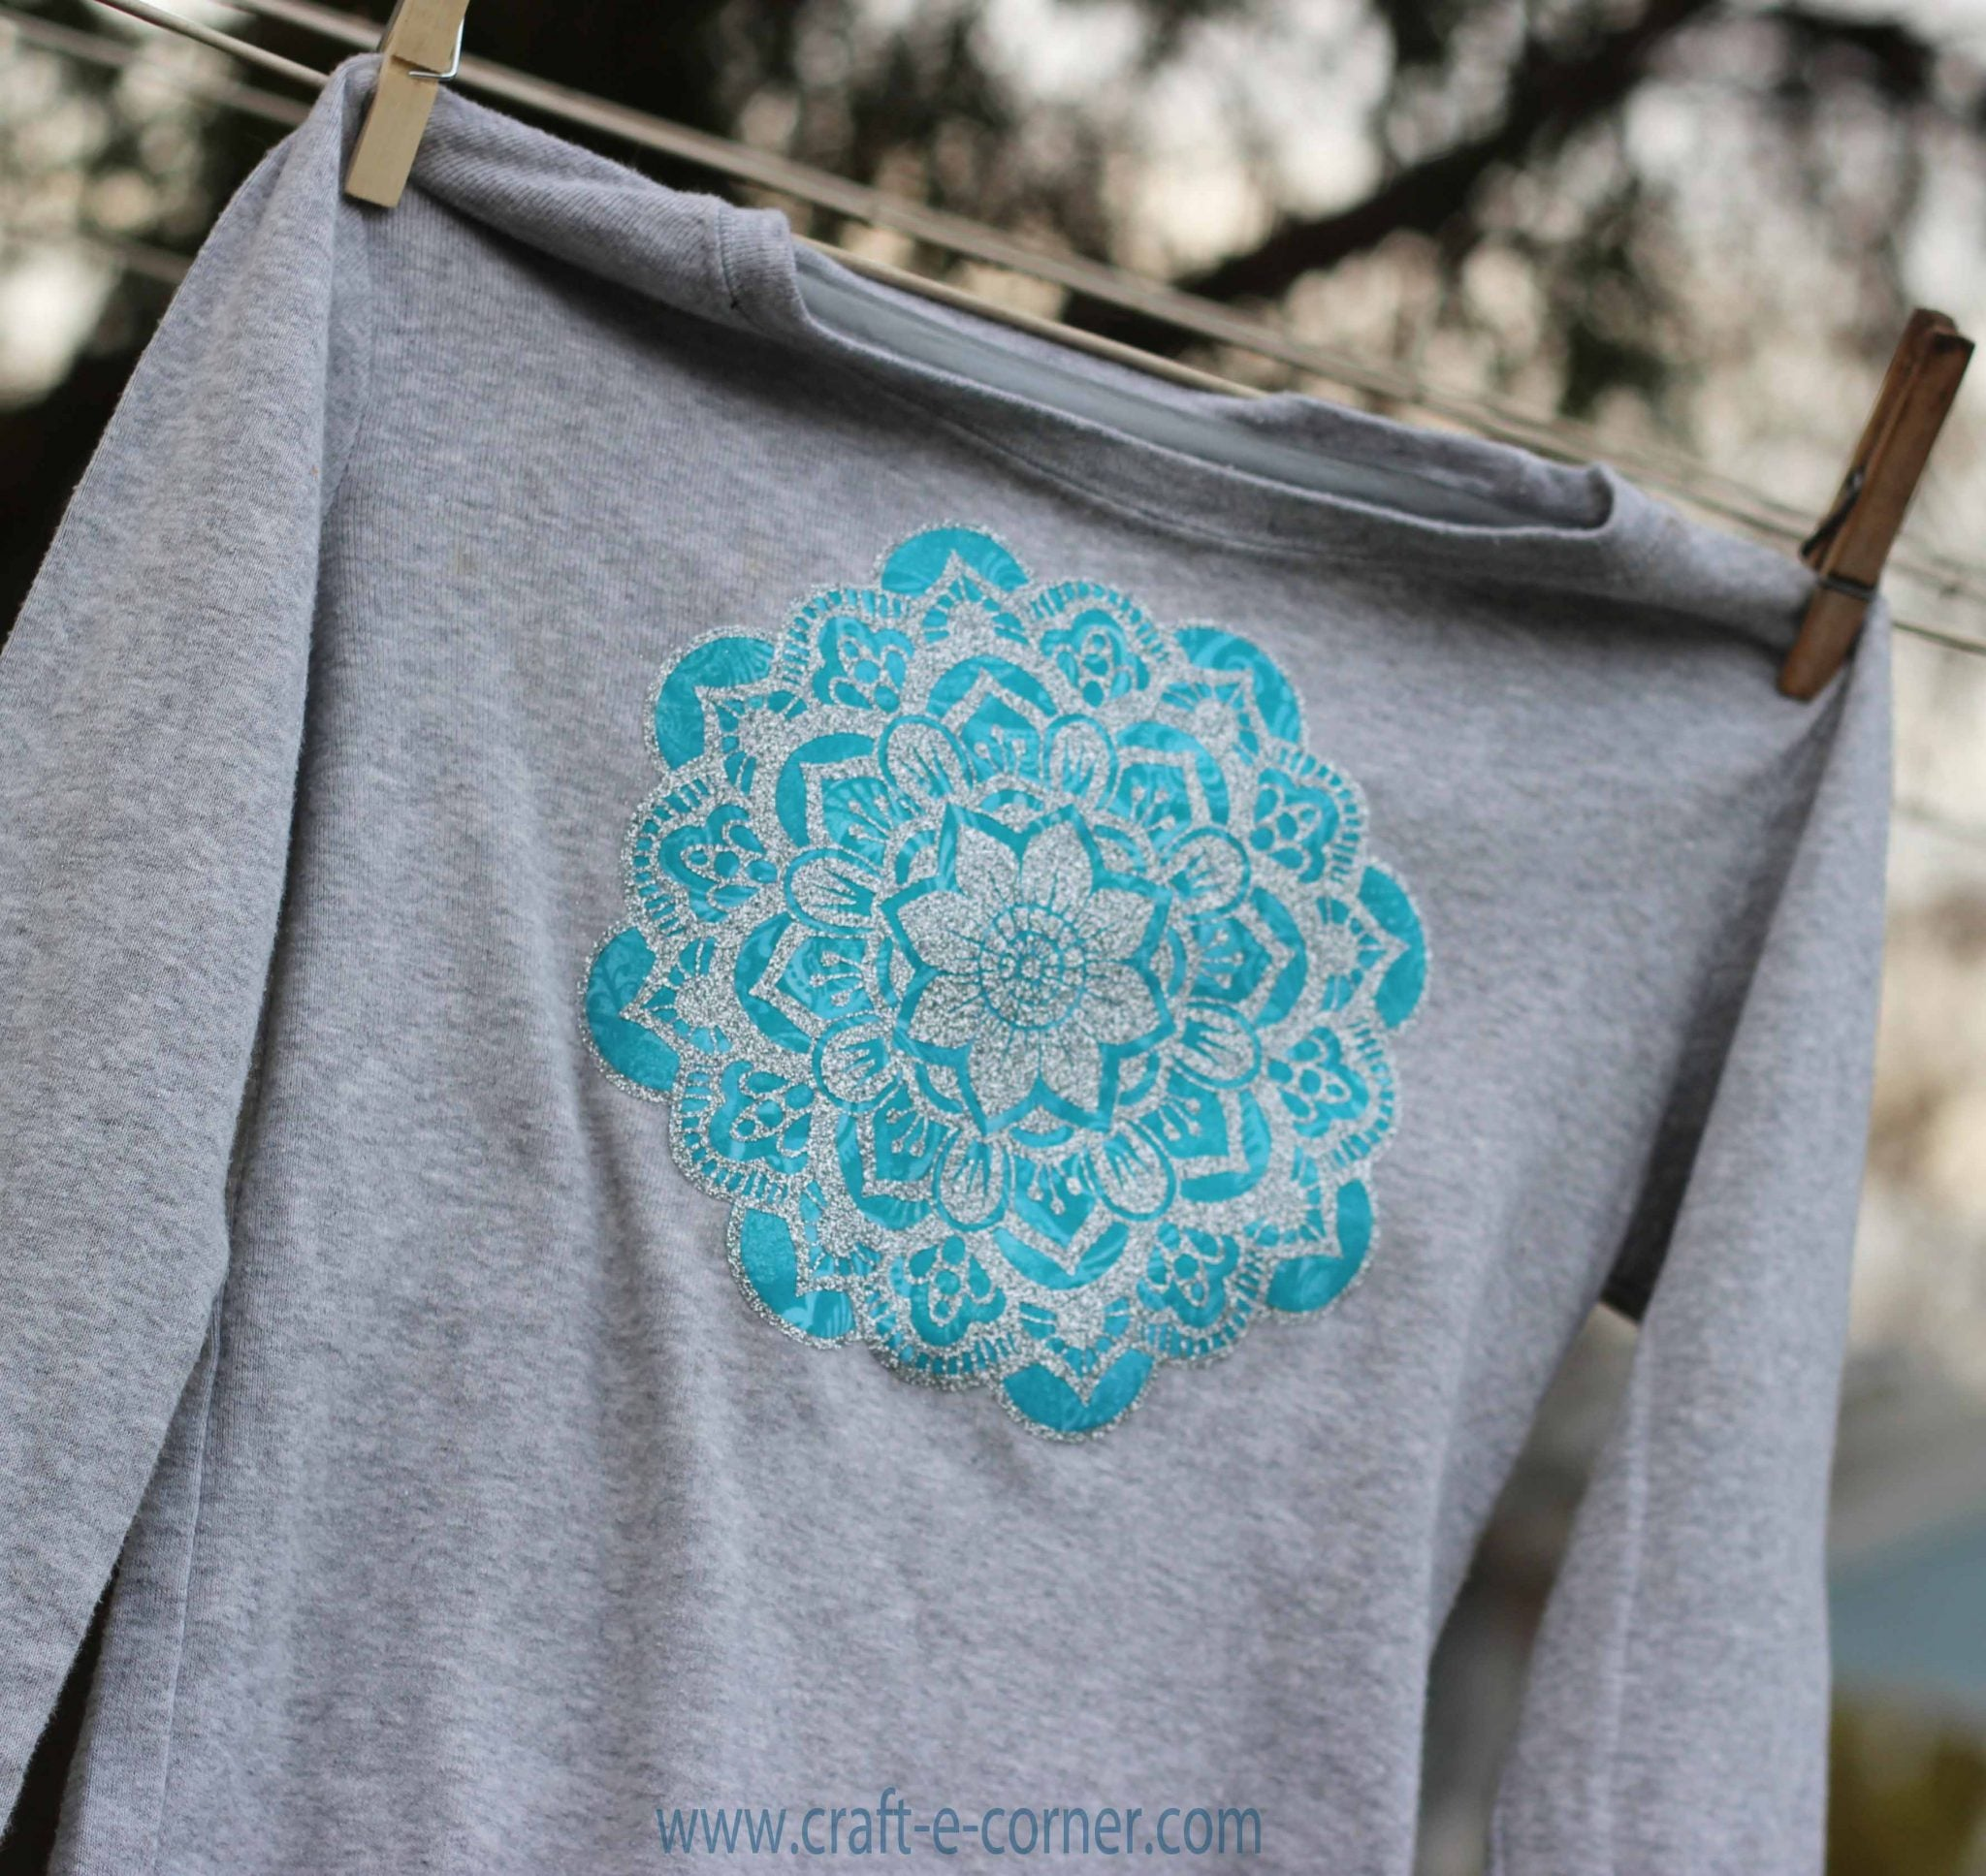 Glitter heat transfer vinyl + fabric- how to! SO PRETTY! So.much.sparkle! Love!